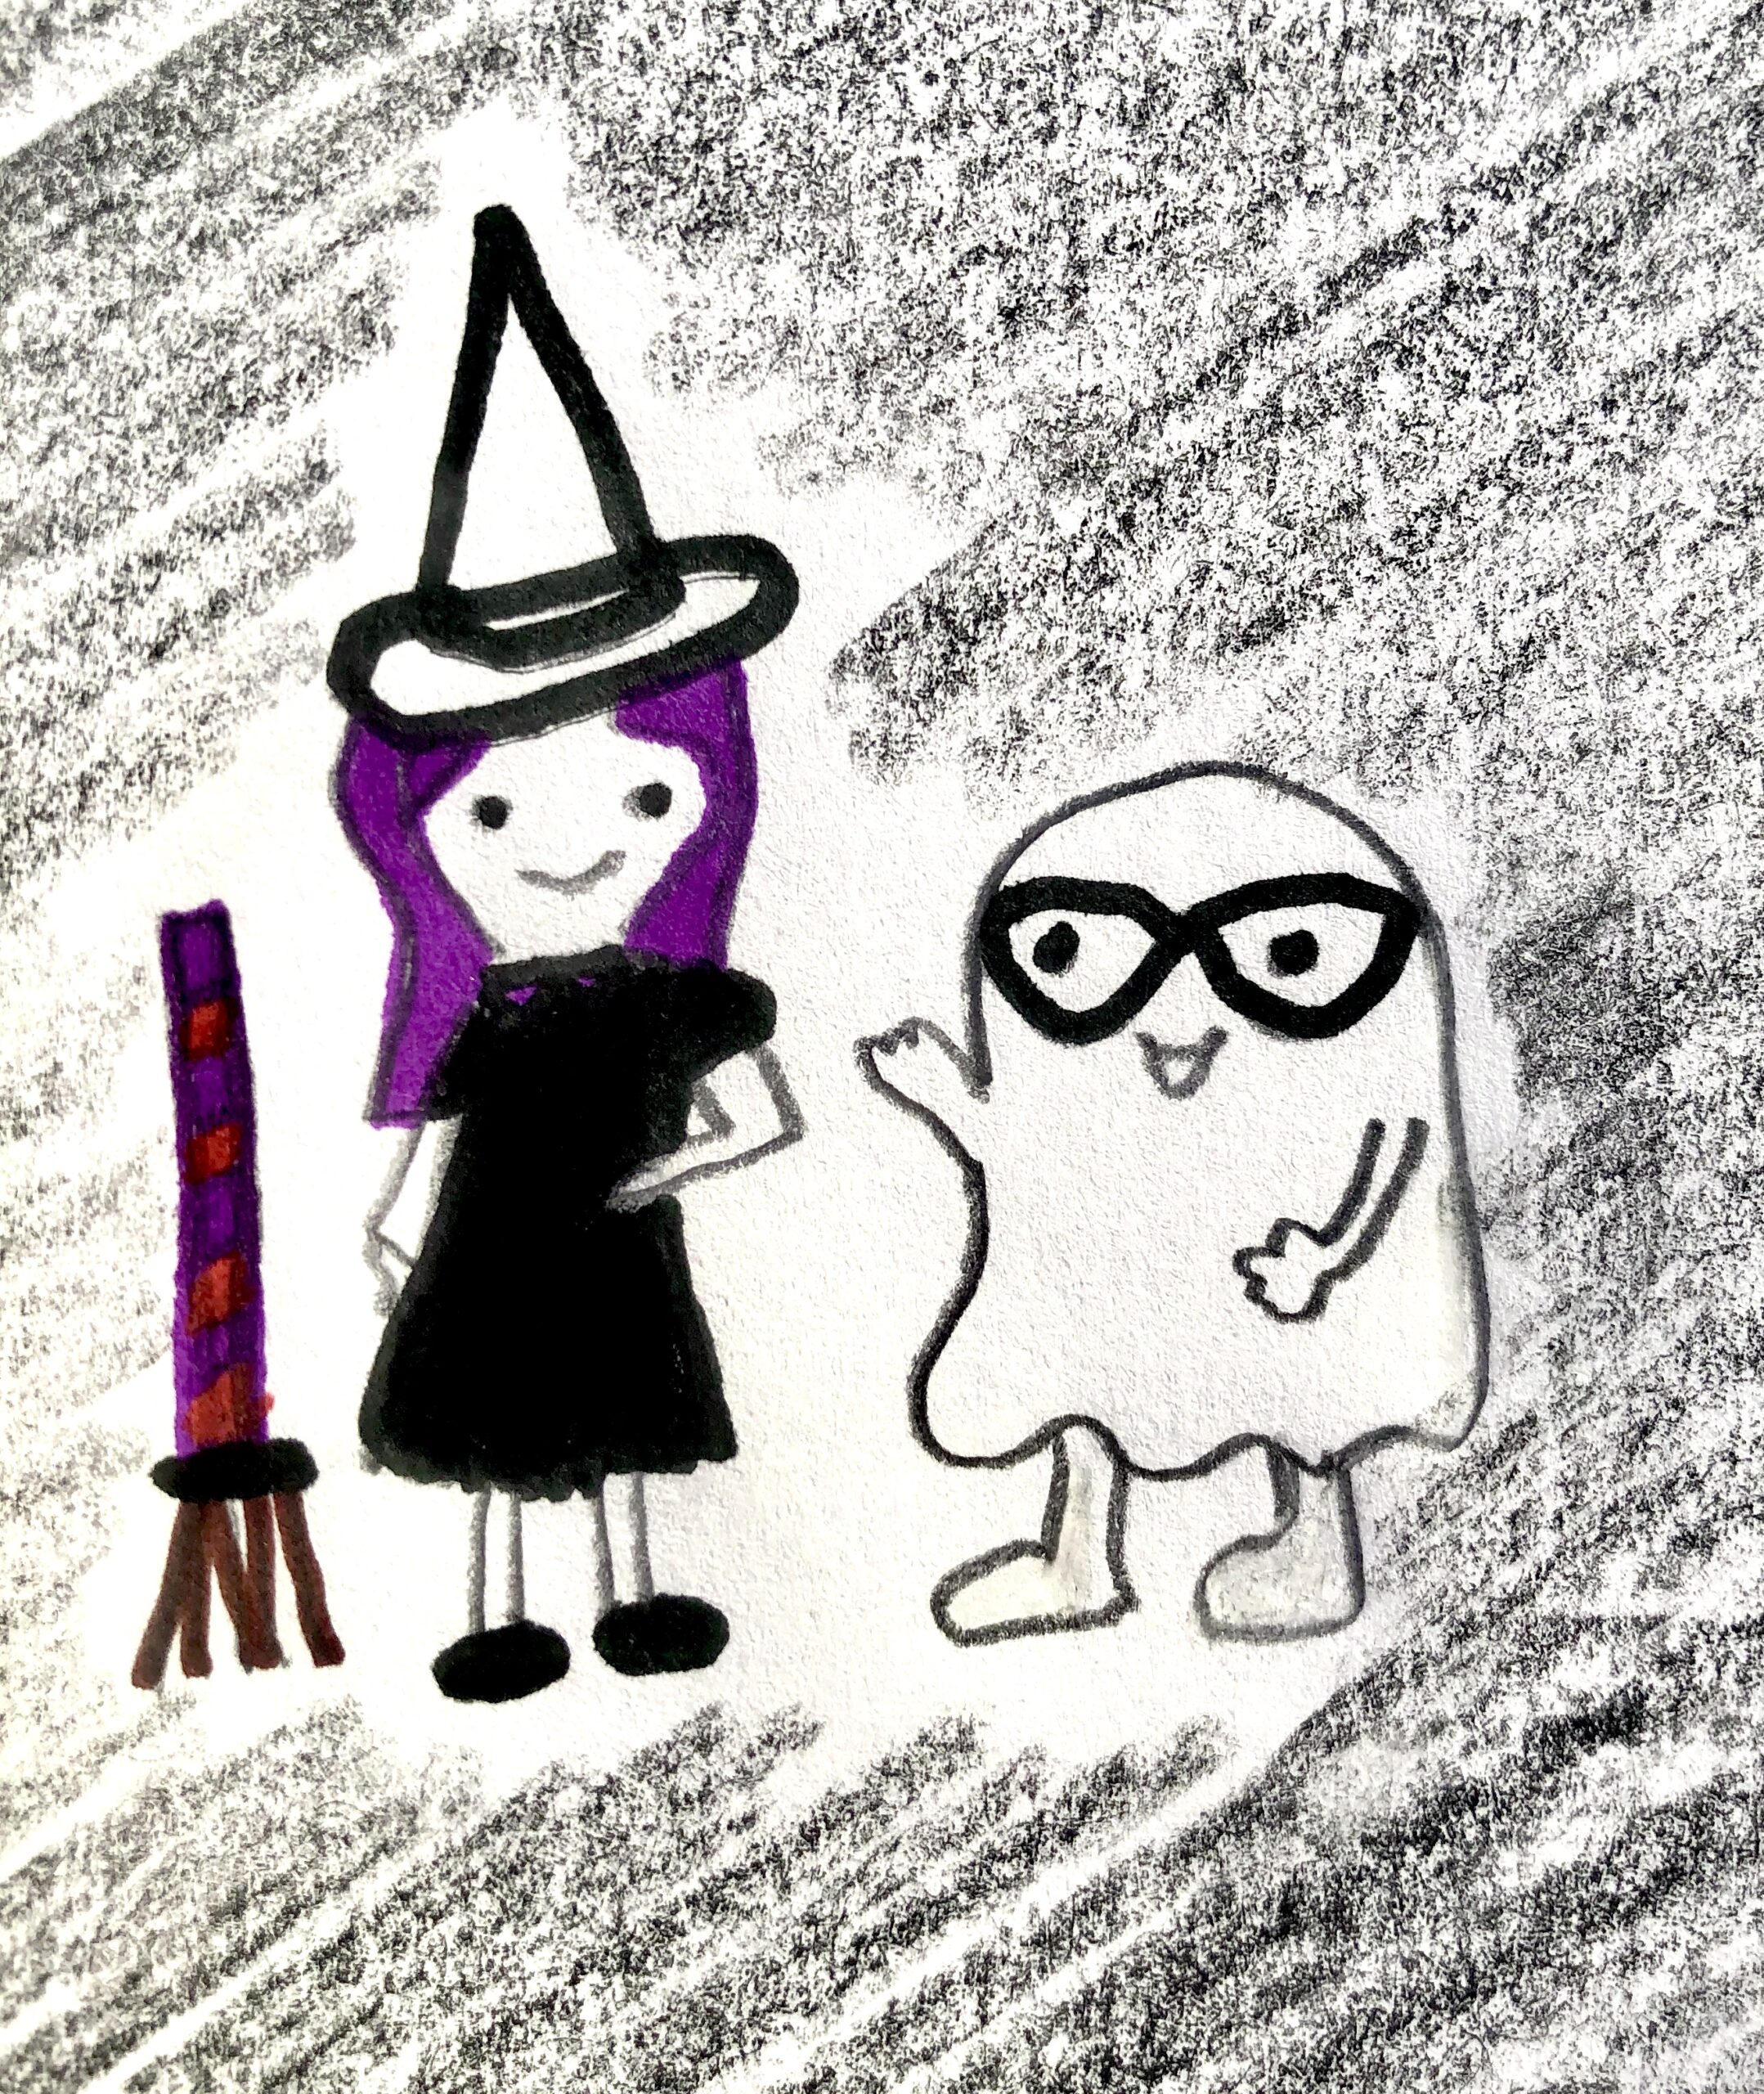 Drawing of a witch with purple hair and a black dress and a ghost with glasses.